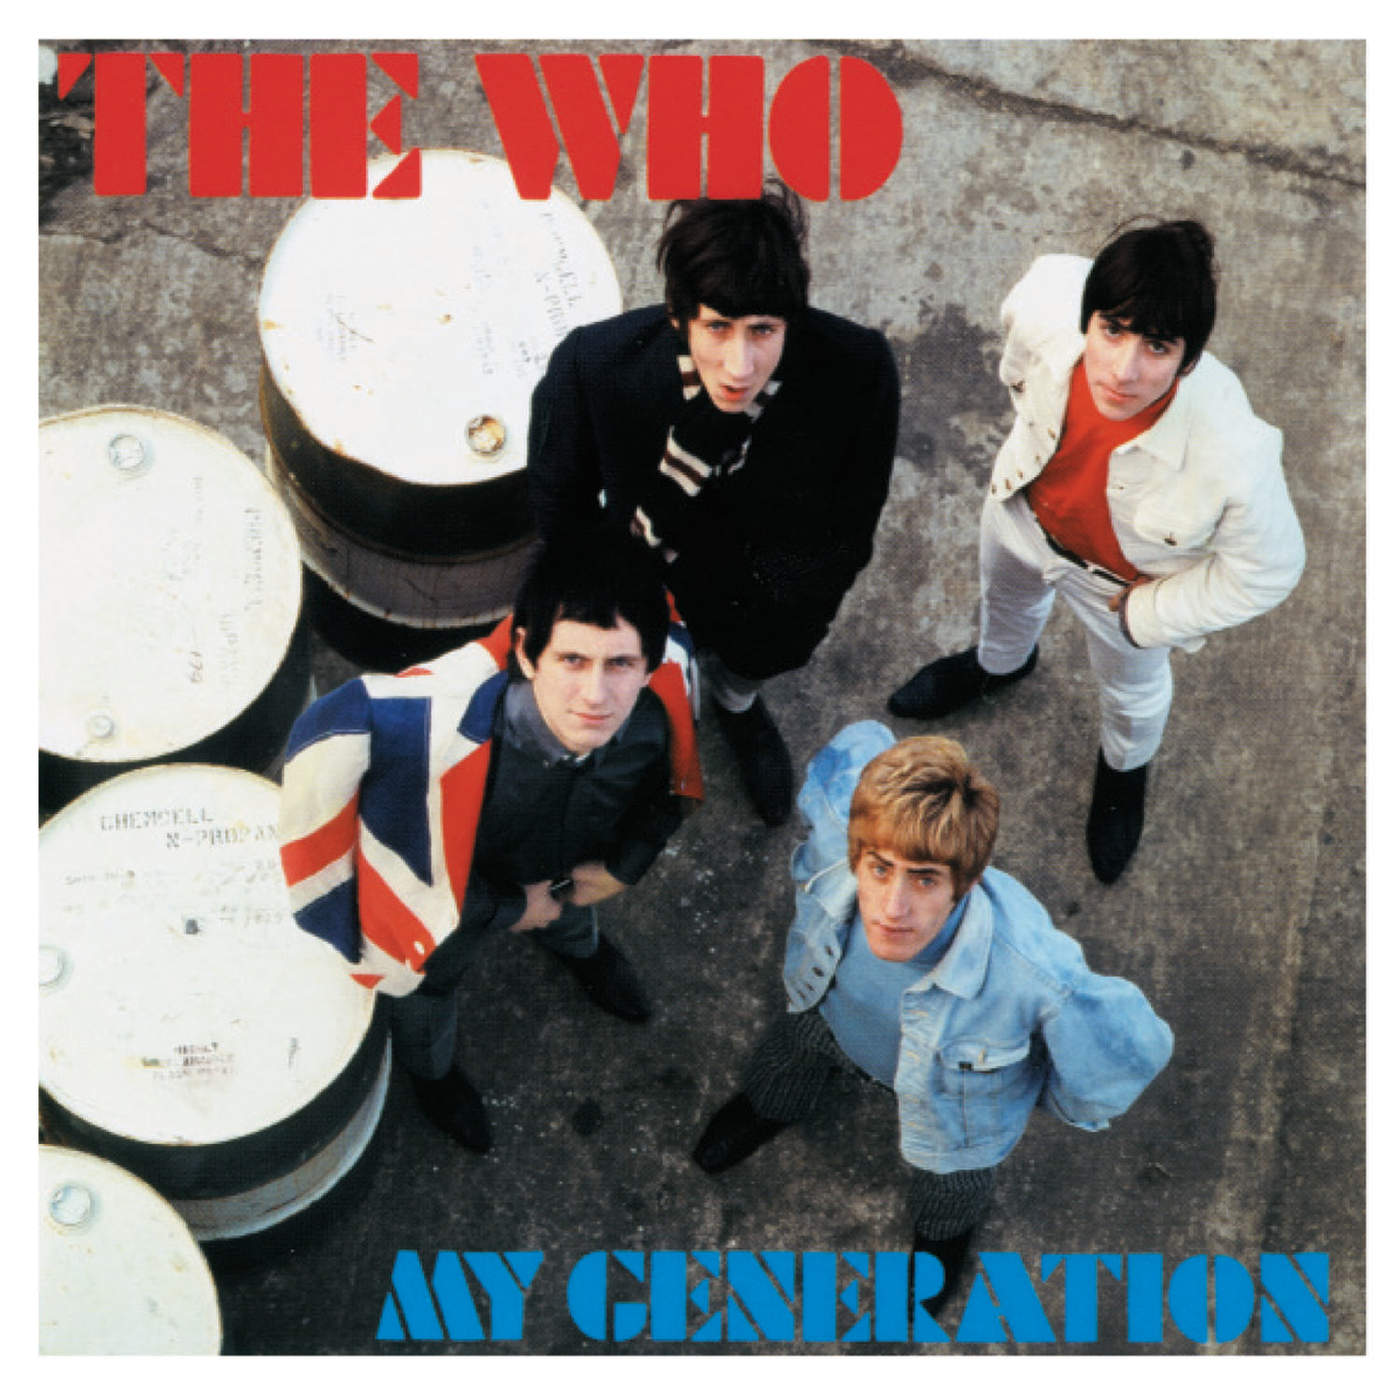 My Generation (Original Mono Version) by The Who